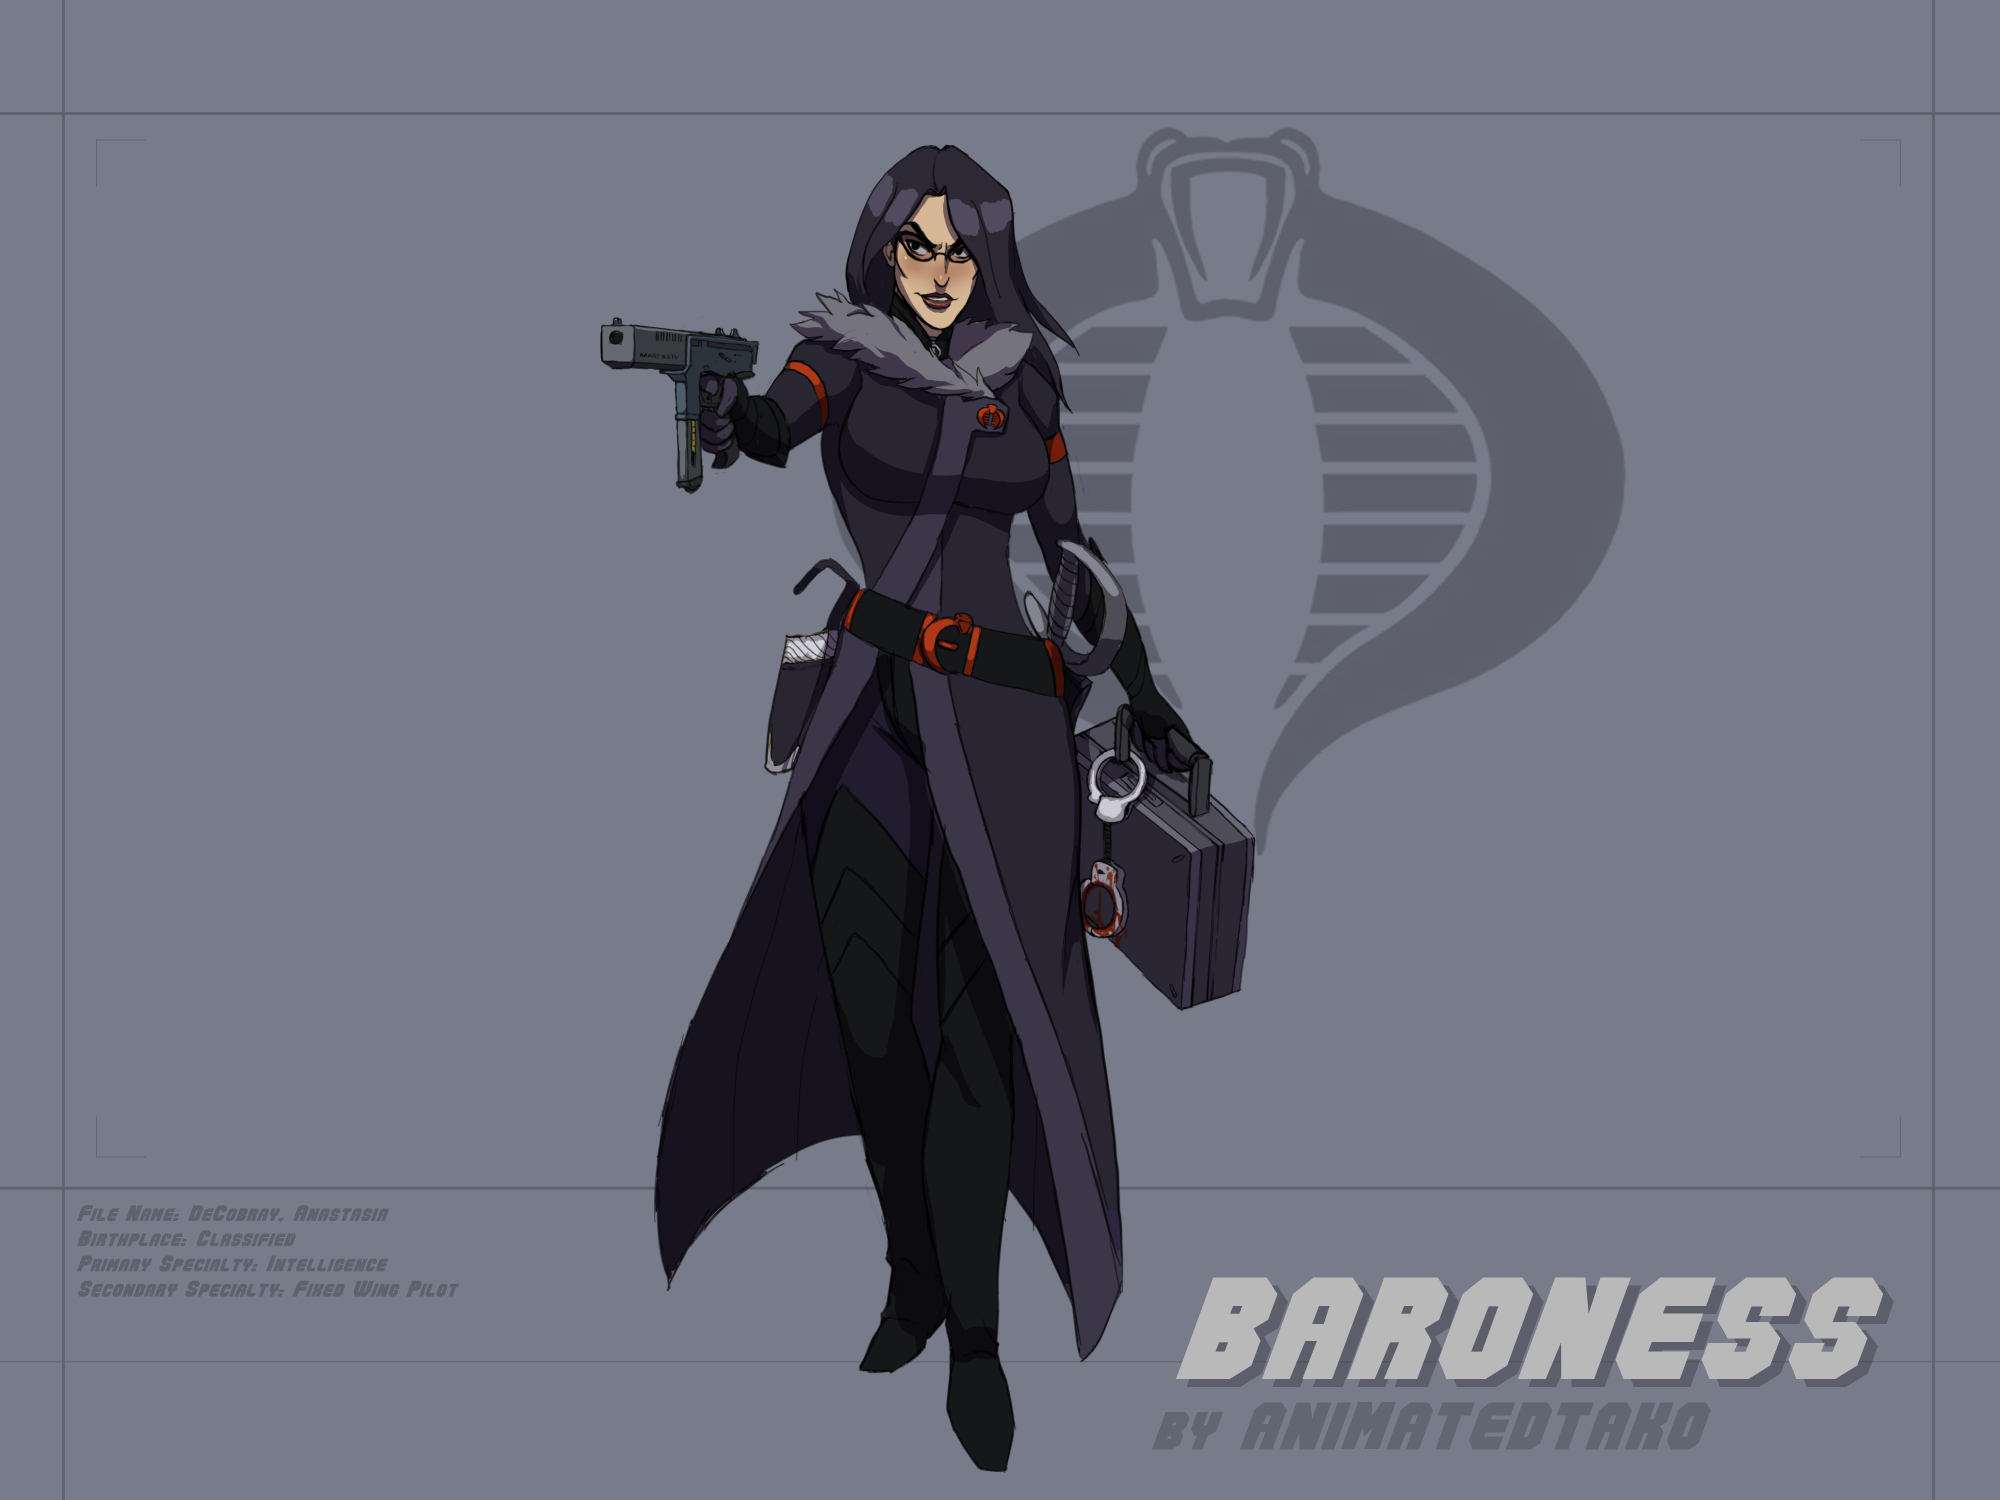 The Baroness